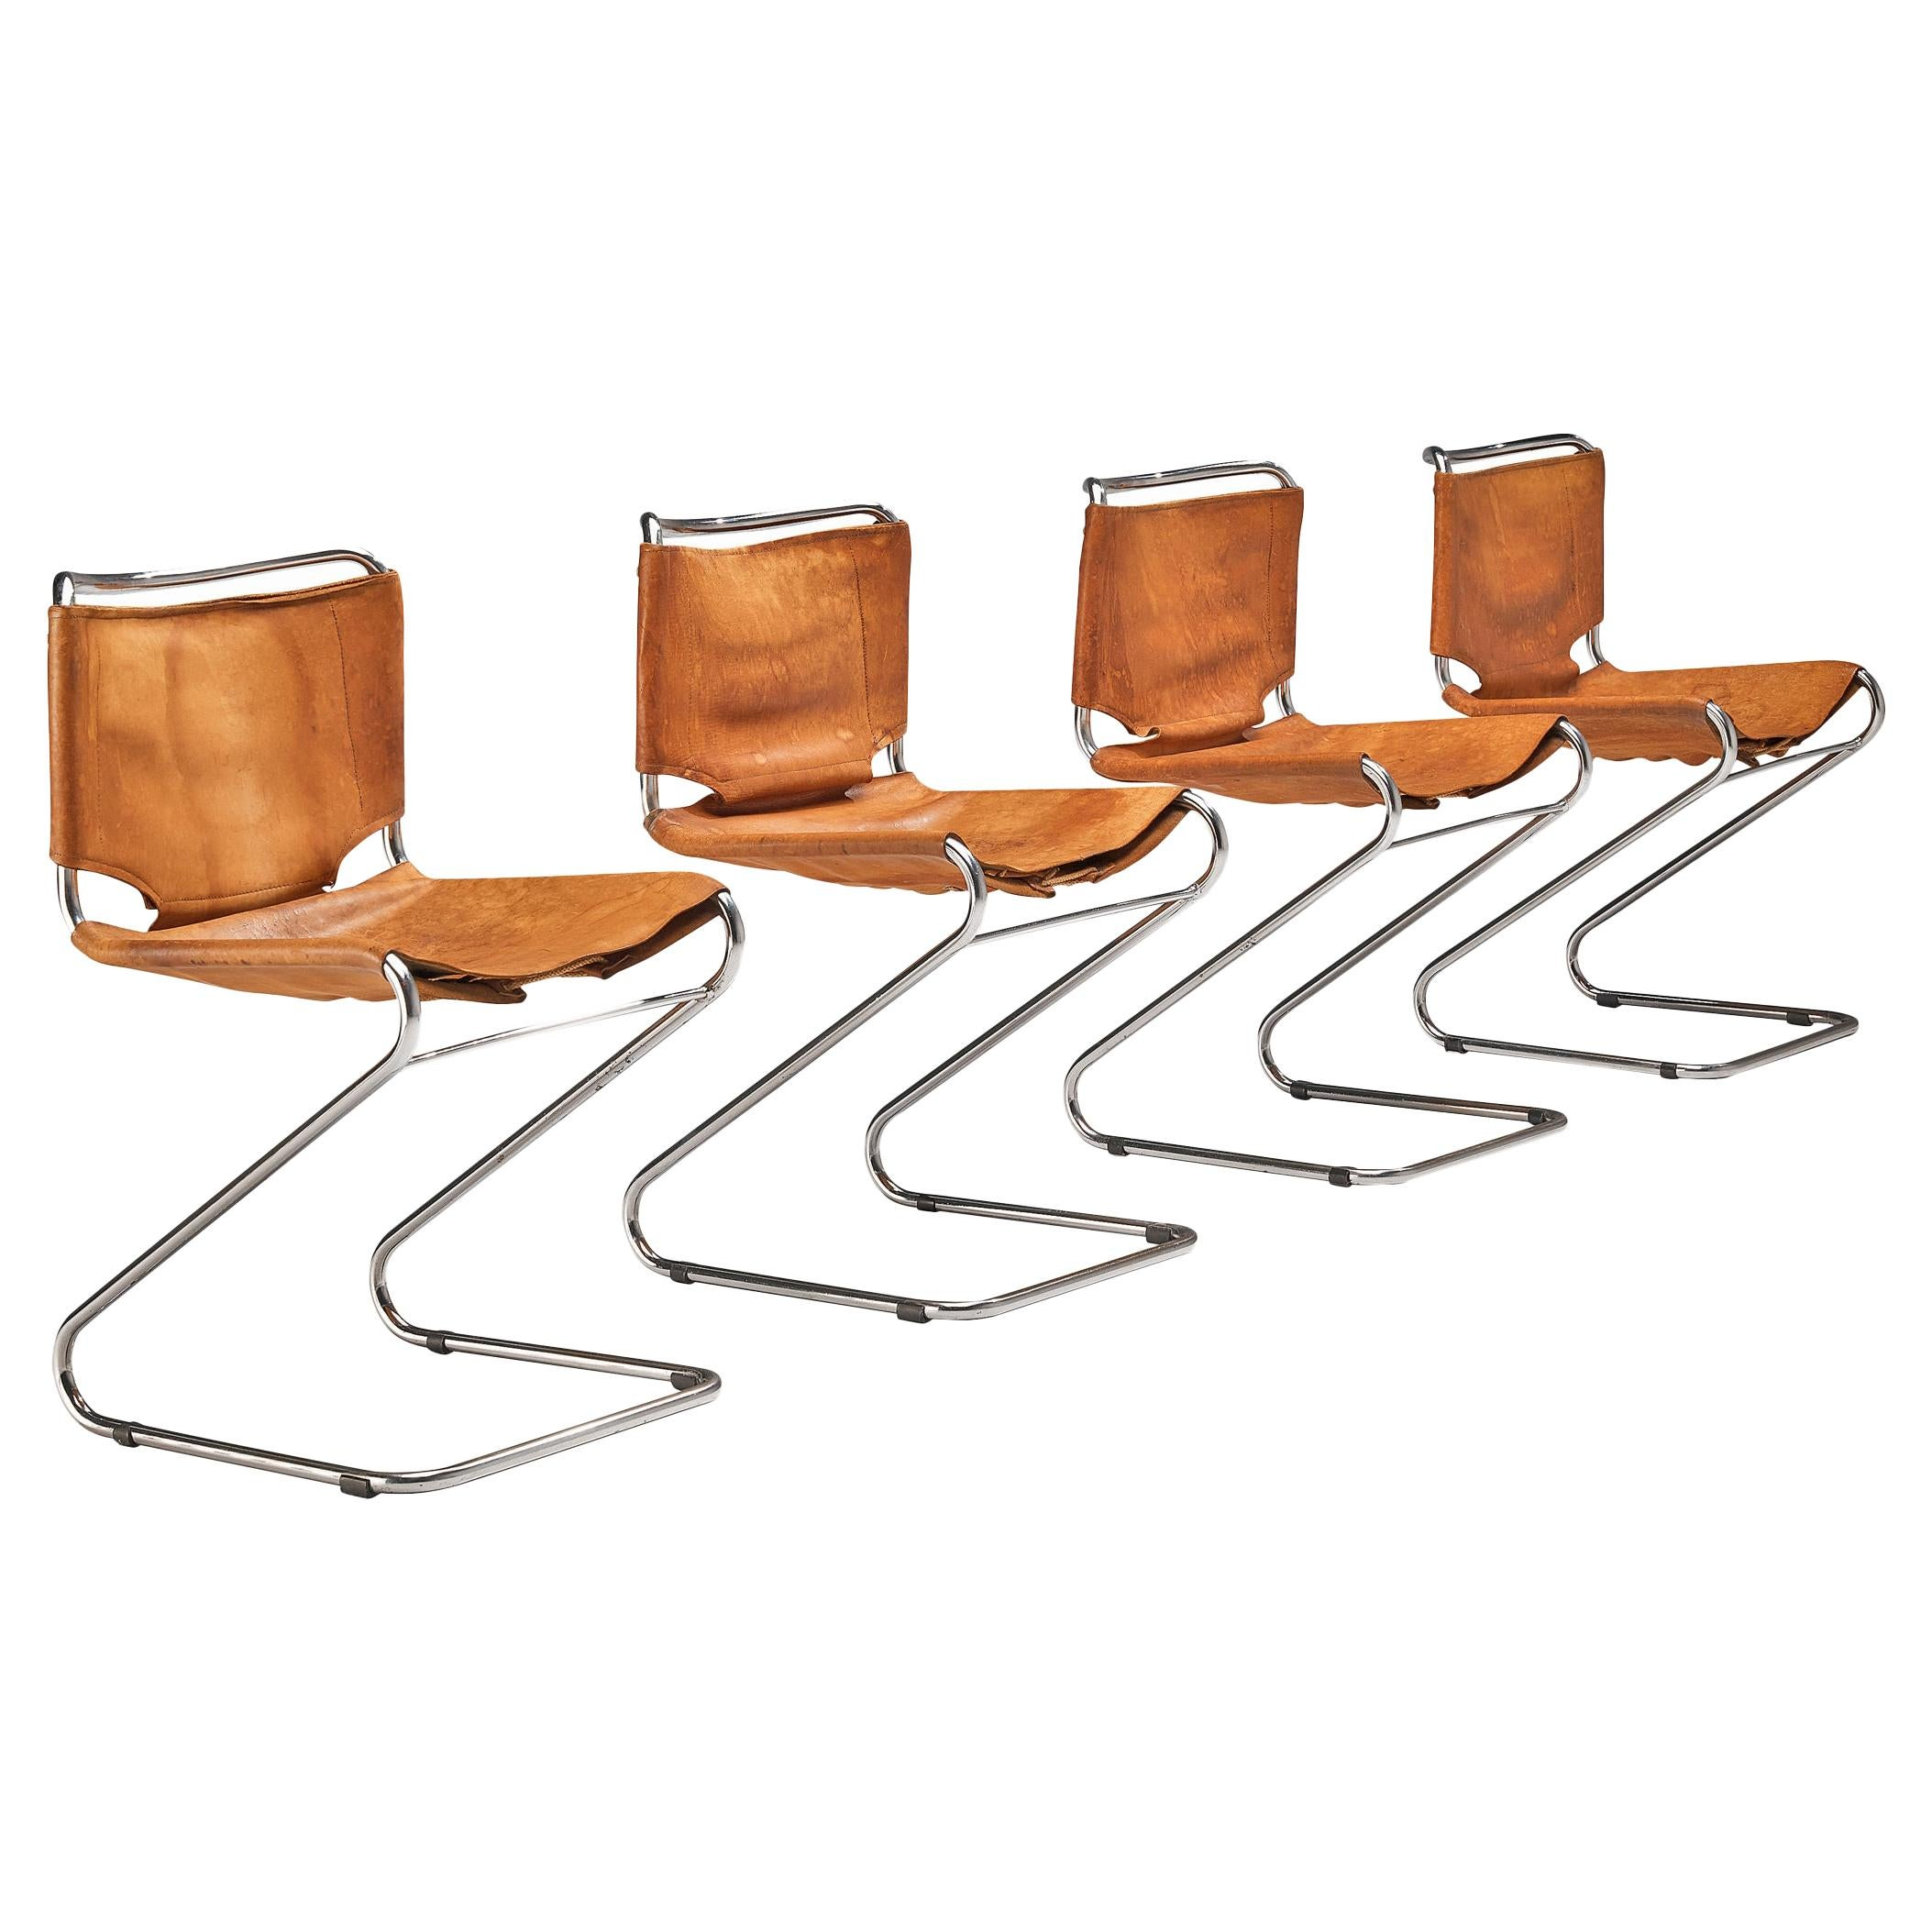 Pascal Mourgue Set of 4 'Biscia' Chairs in Cognac Leather